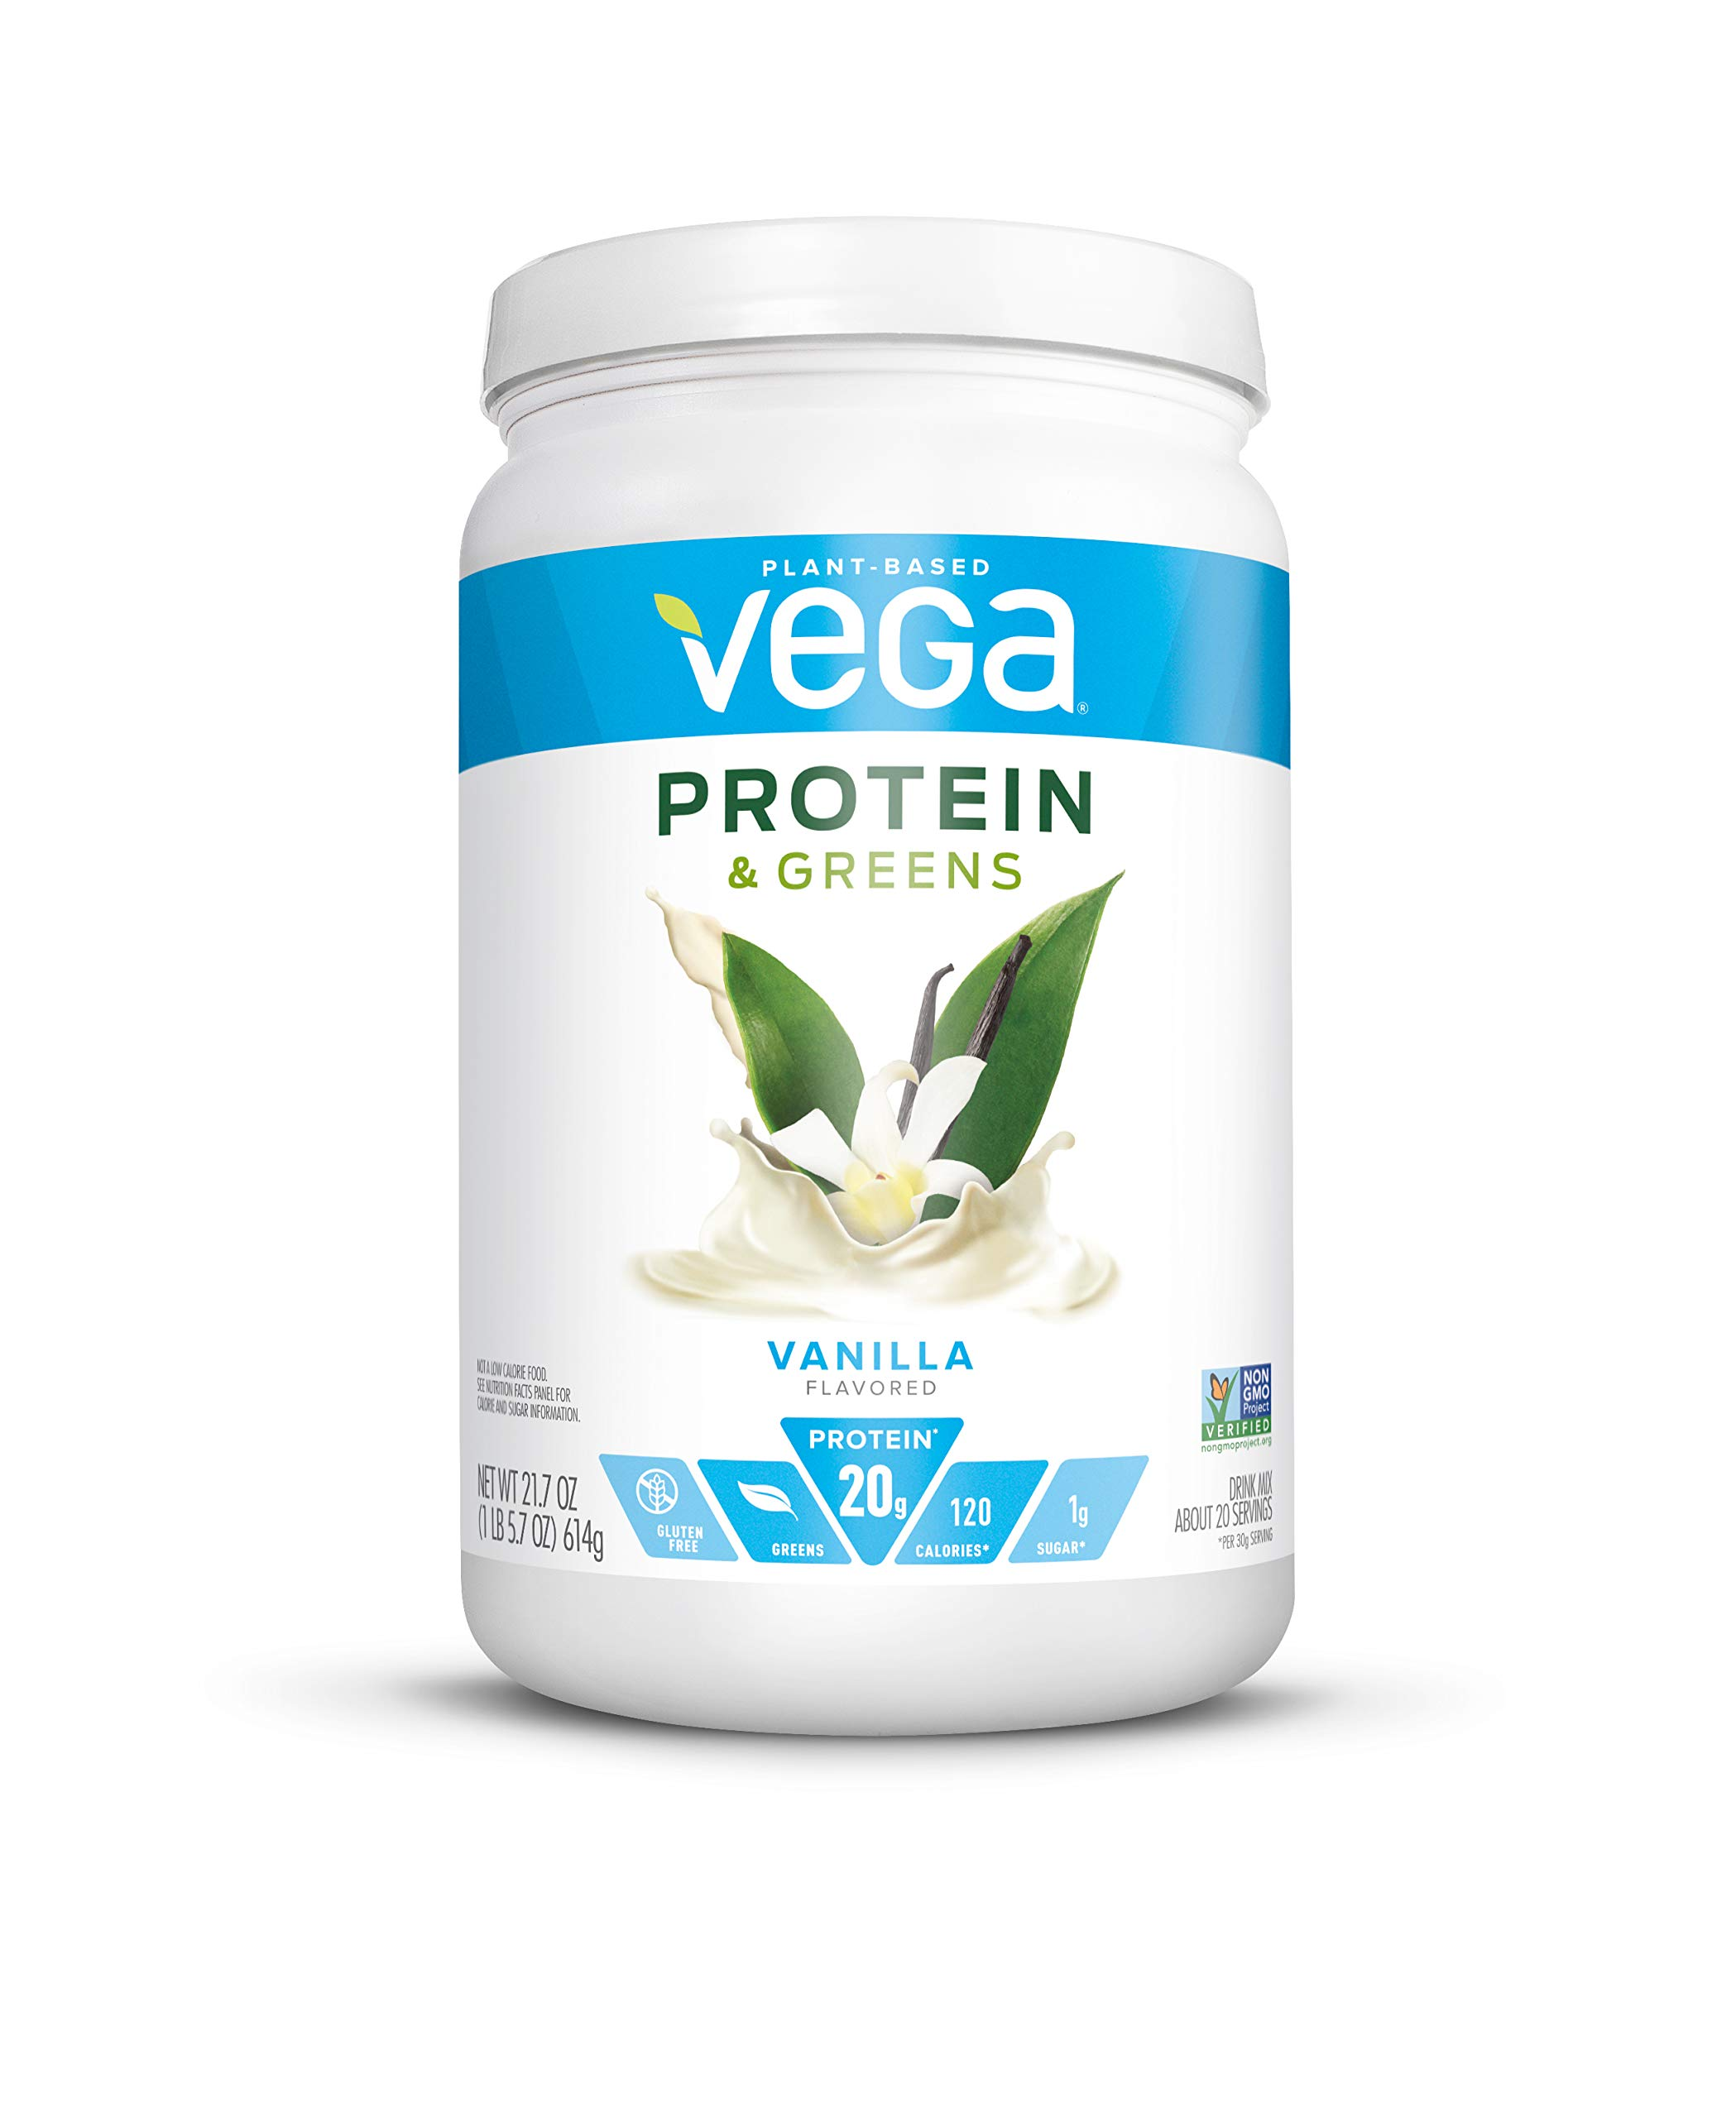 Vega Protein and Greens, Vanilla, Plant Based Protein Powder Plus Veggies - Vegan Protein Powder, Keto-Friendly, Vegetarian, Gluten Free, Soy Free, Dairy Free, Lactose Free (20 Servings, 1lb 5.7oz)